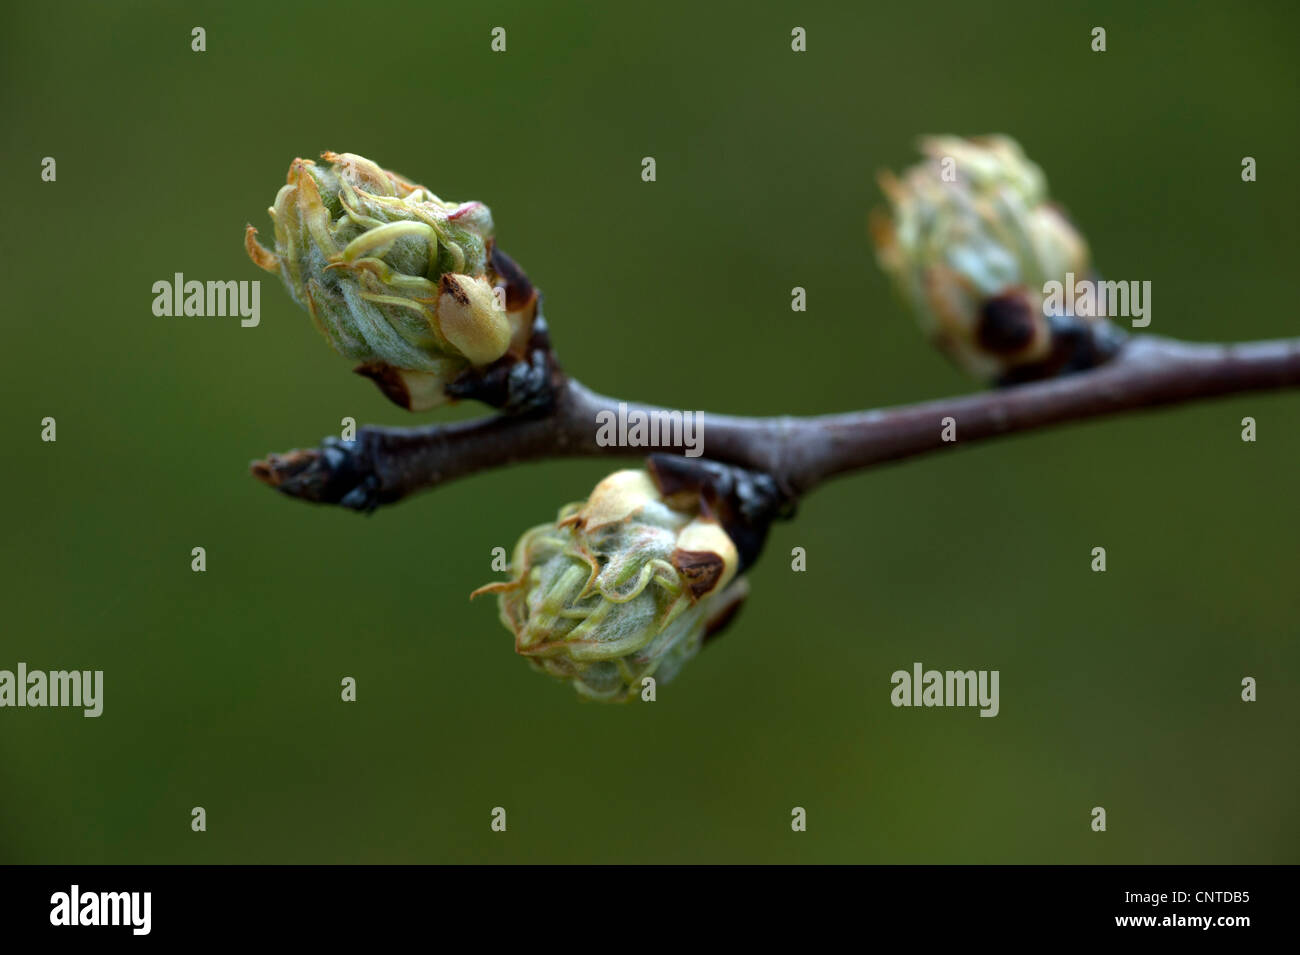 swelling buds on pear tree doyenne du commice in spring (pyrus communis) - Stock Image